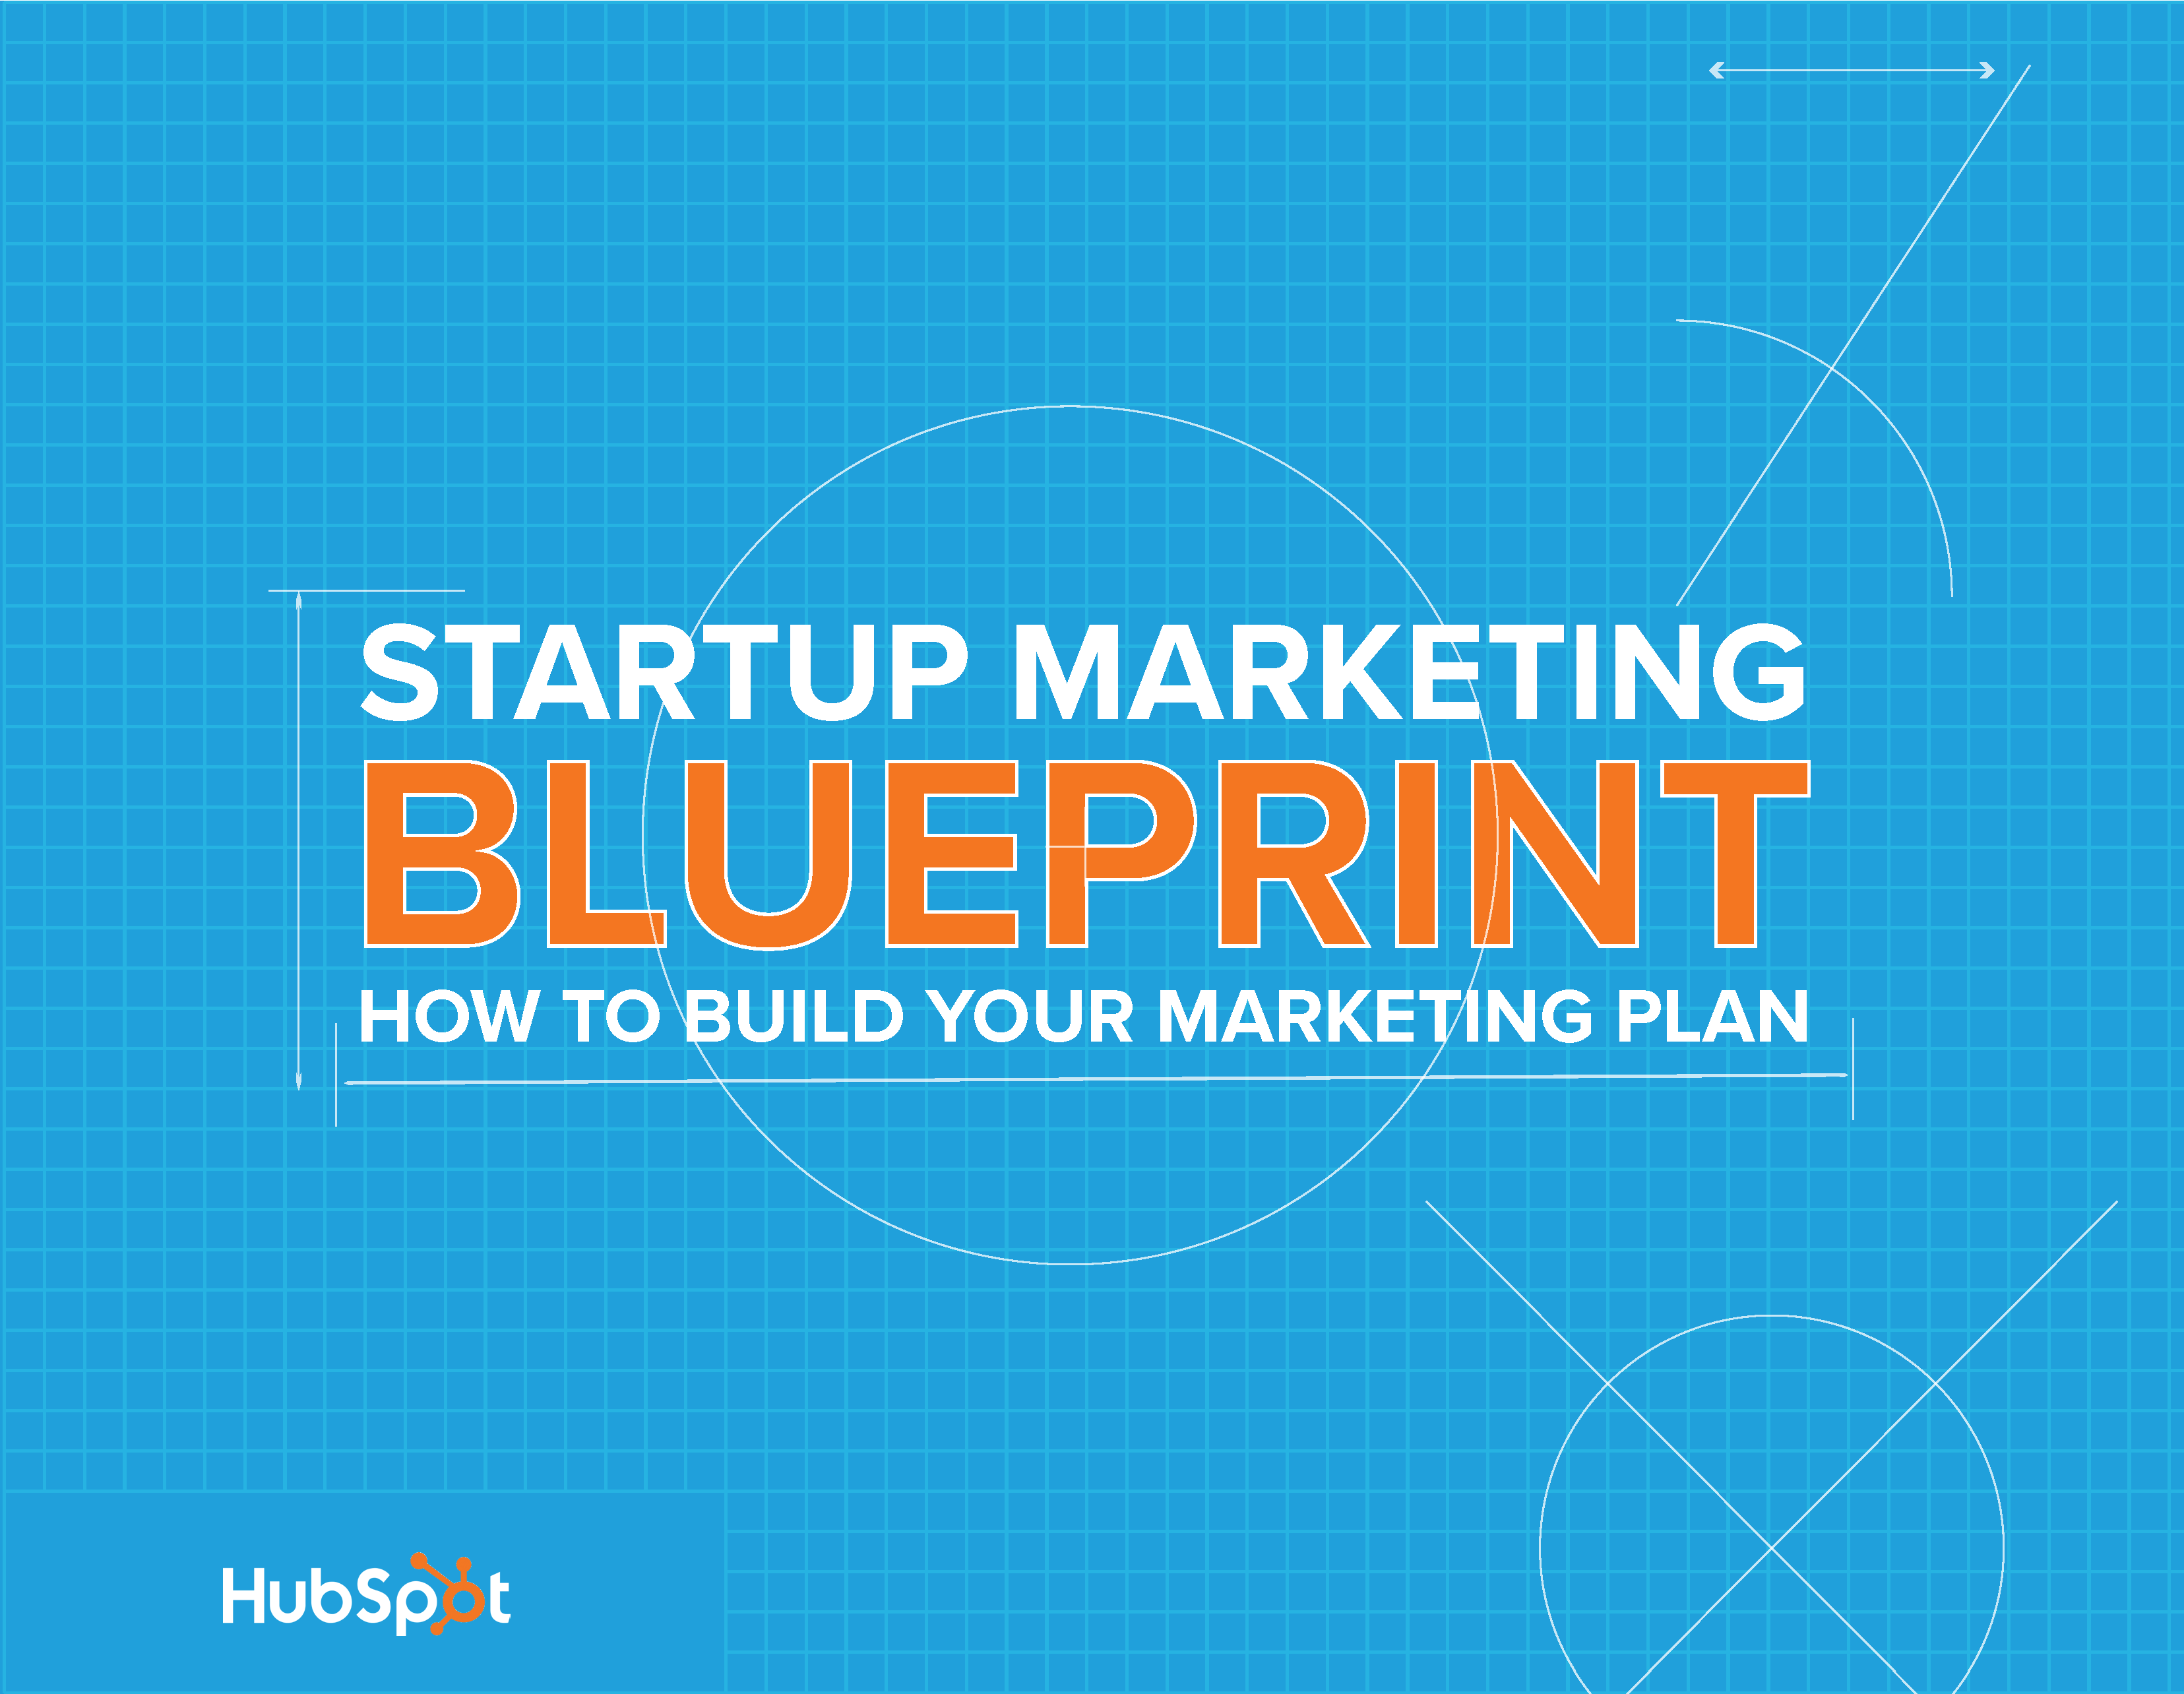 Startup marketing plan blueprint startup marketing blueprint preview malvernweather Image collections